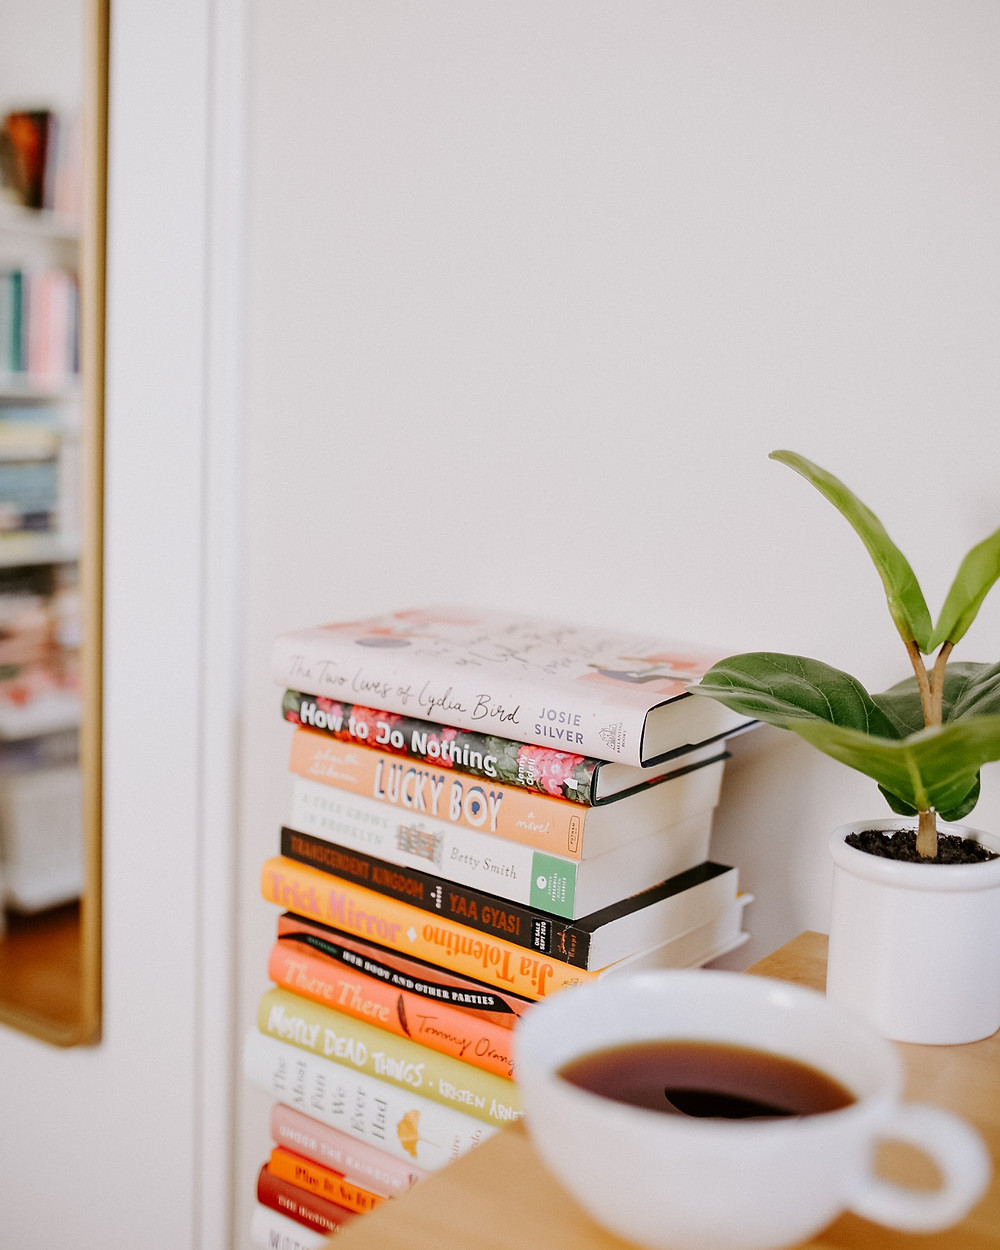 A stack of books with coffee and plants